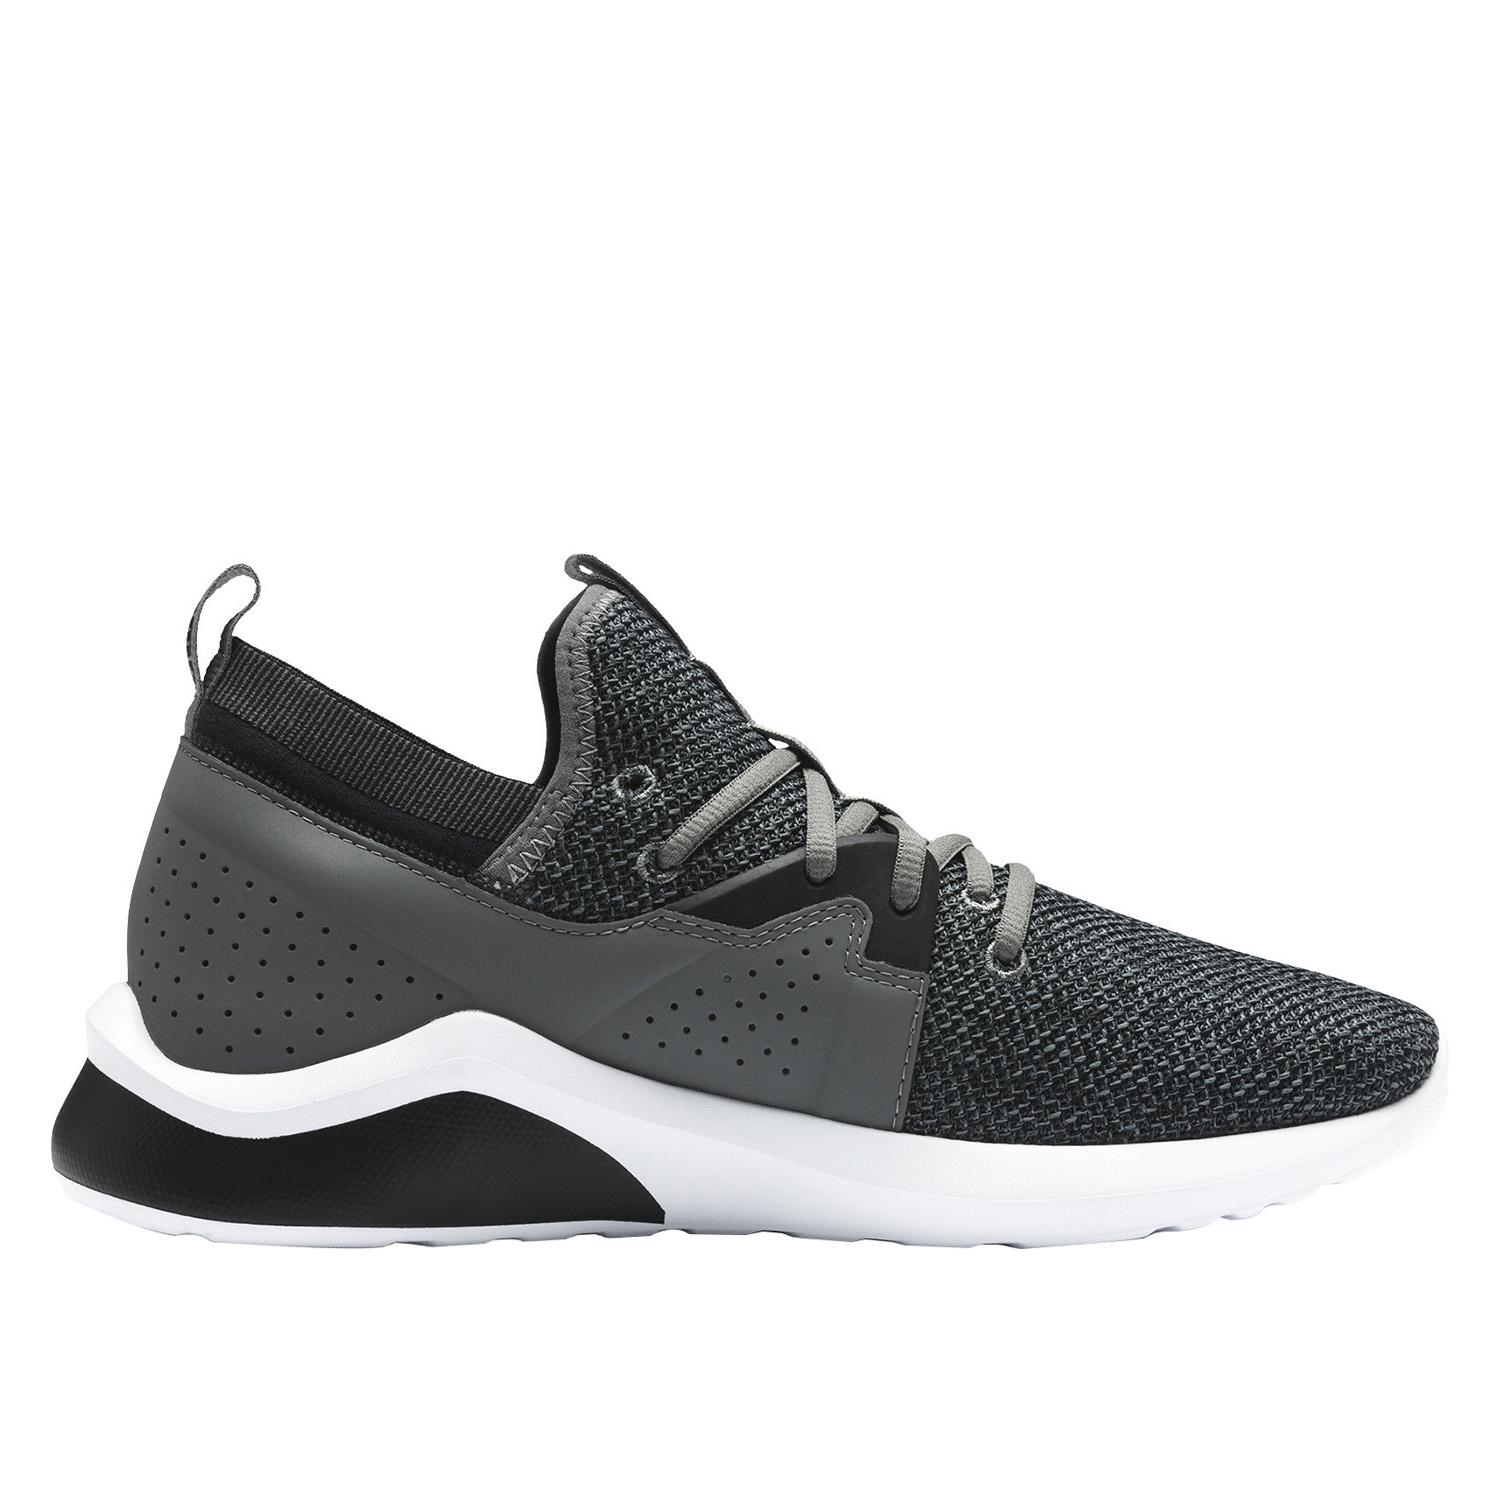 Puma Emergence Men's Running Shoe